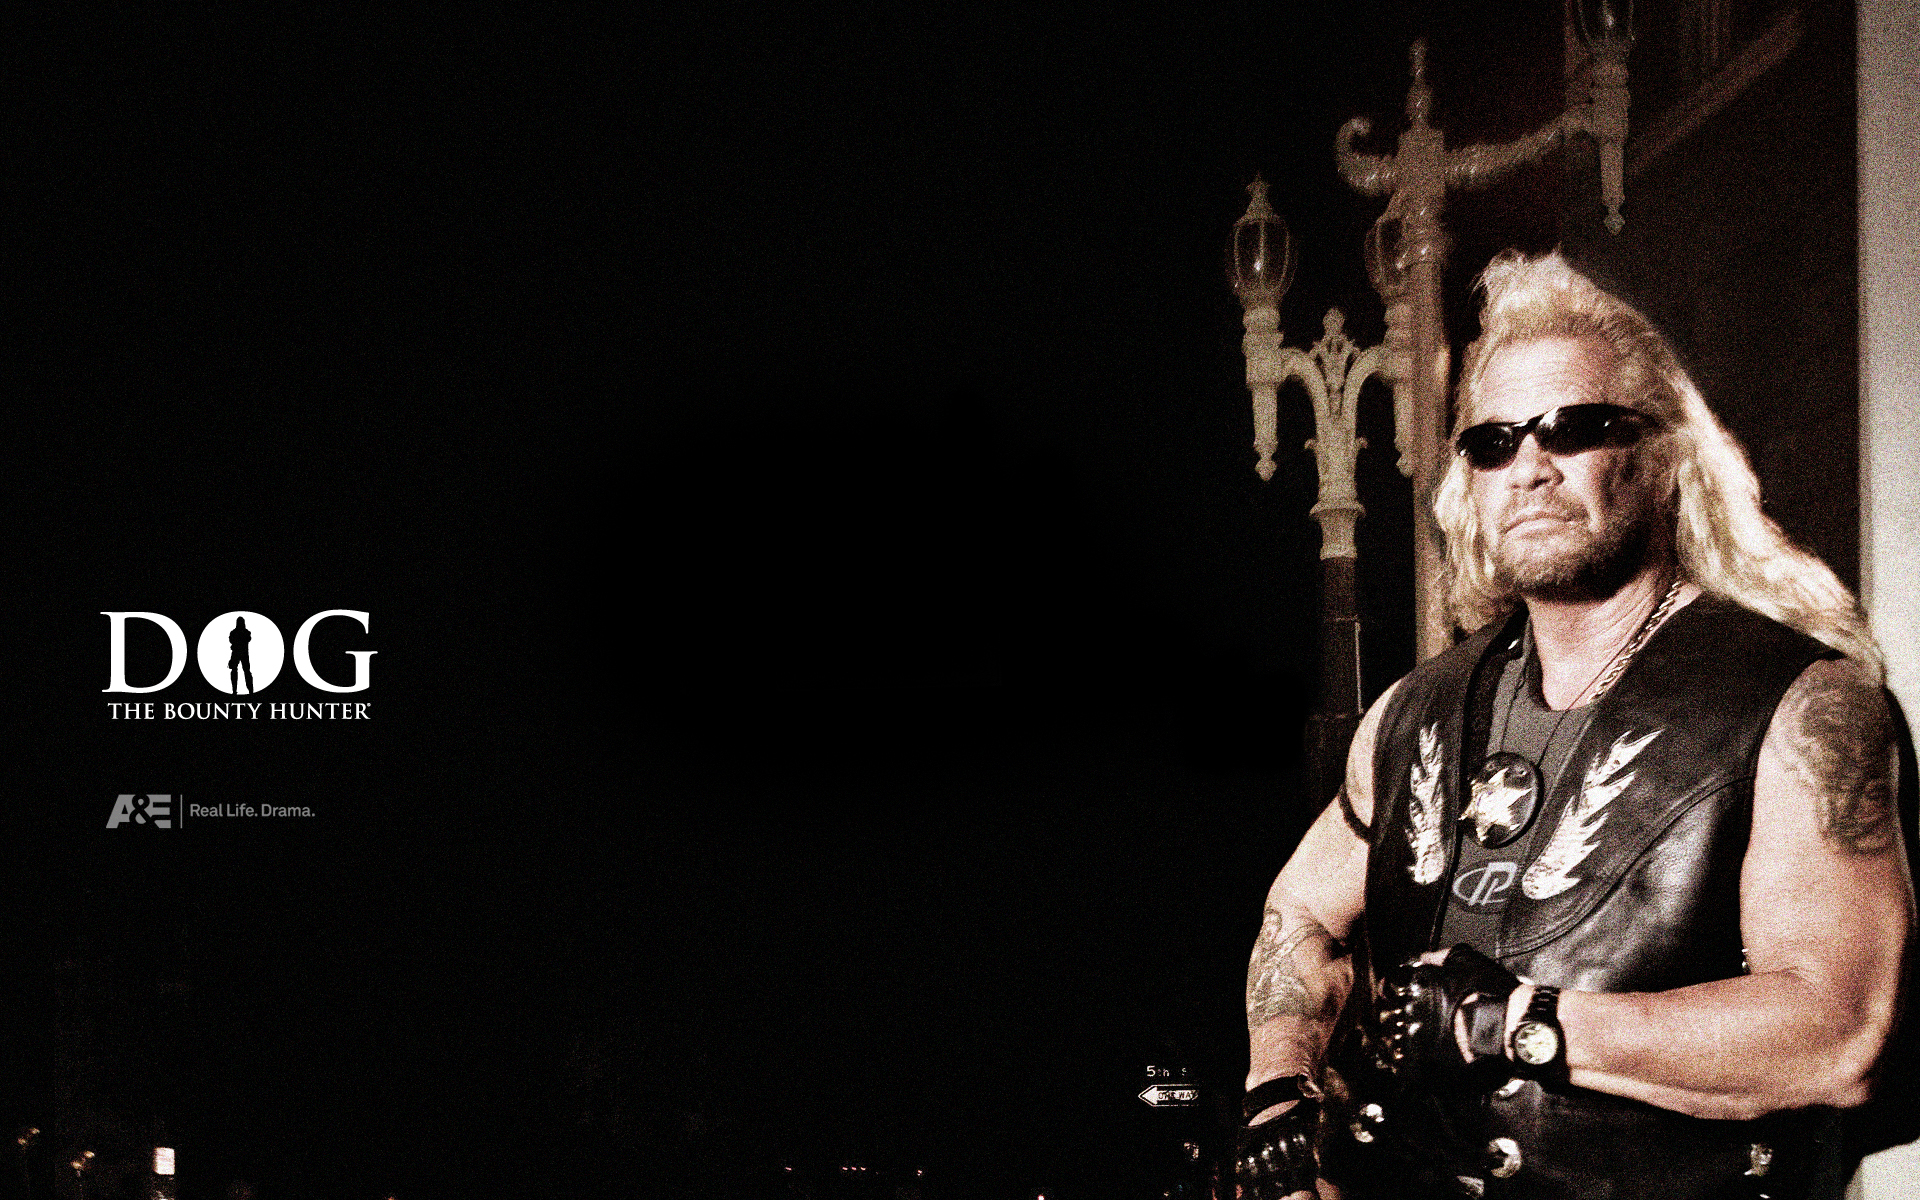 Modernday vigilante Duane Dog Chapman rounded up more than 6000 of the country s most dangerous criminals Then suddenly the toughest man on television found